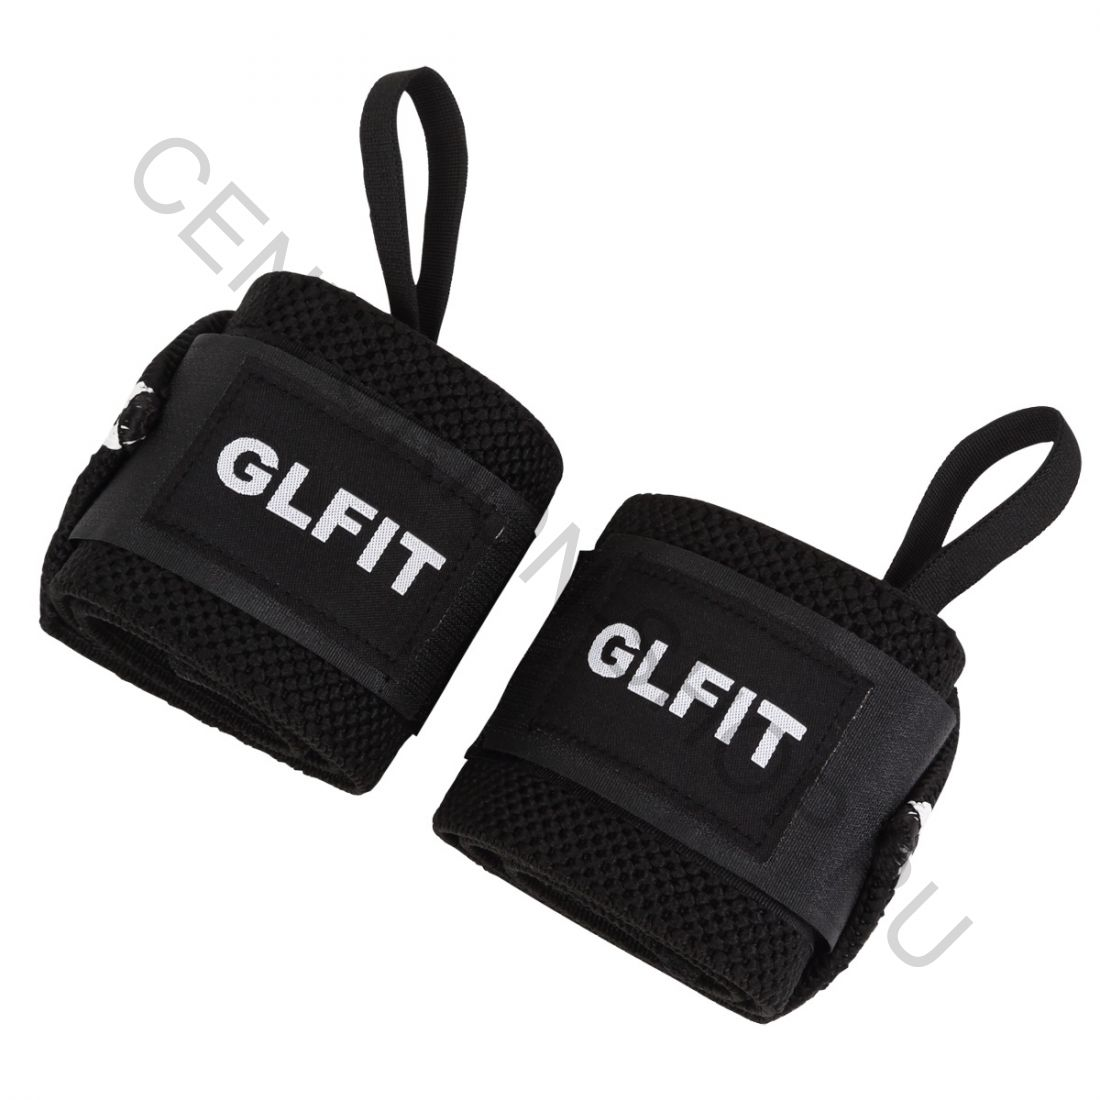 GLFIT Wrist Wraps IPF approved. Кистевые бинты.